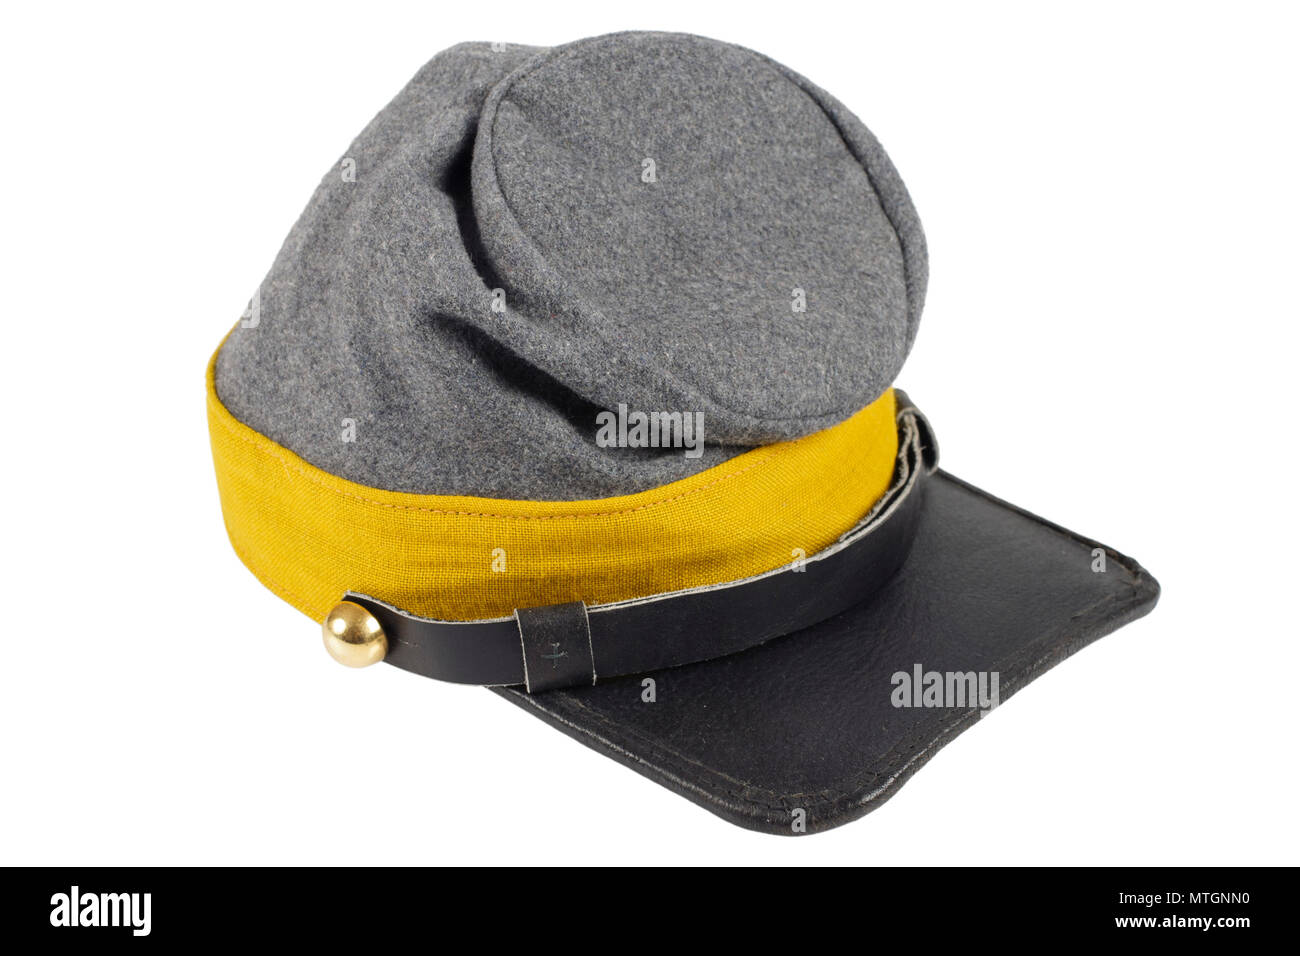 confederate cavalry kepi American Civil War period - Stock Image